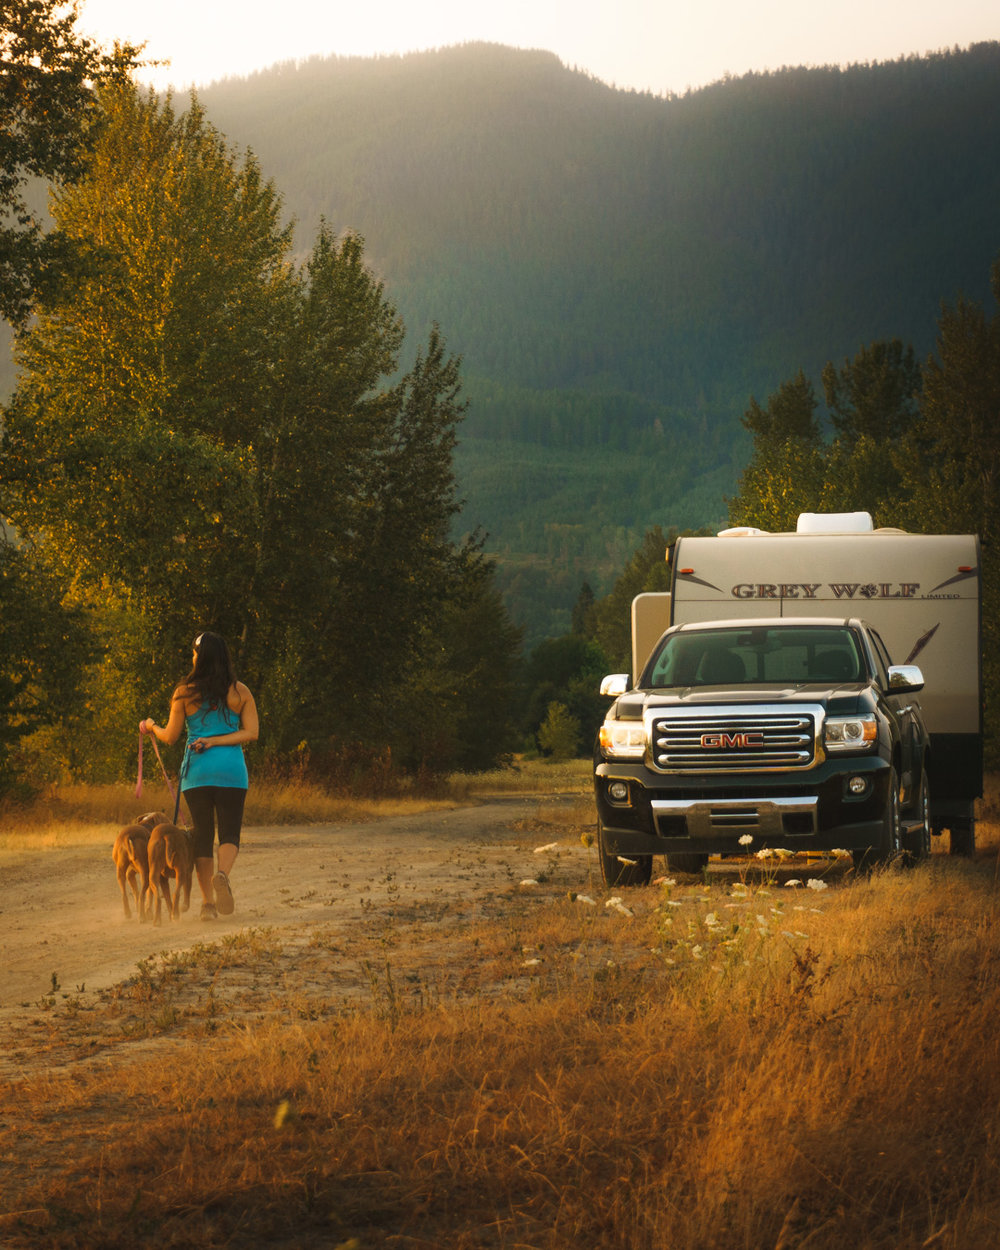 Some of our most epic boondocking spots were found using a combination of Campendium, Google Maps, the US Forest service website, and a healthy dose of curiosity.